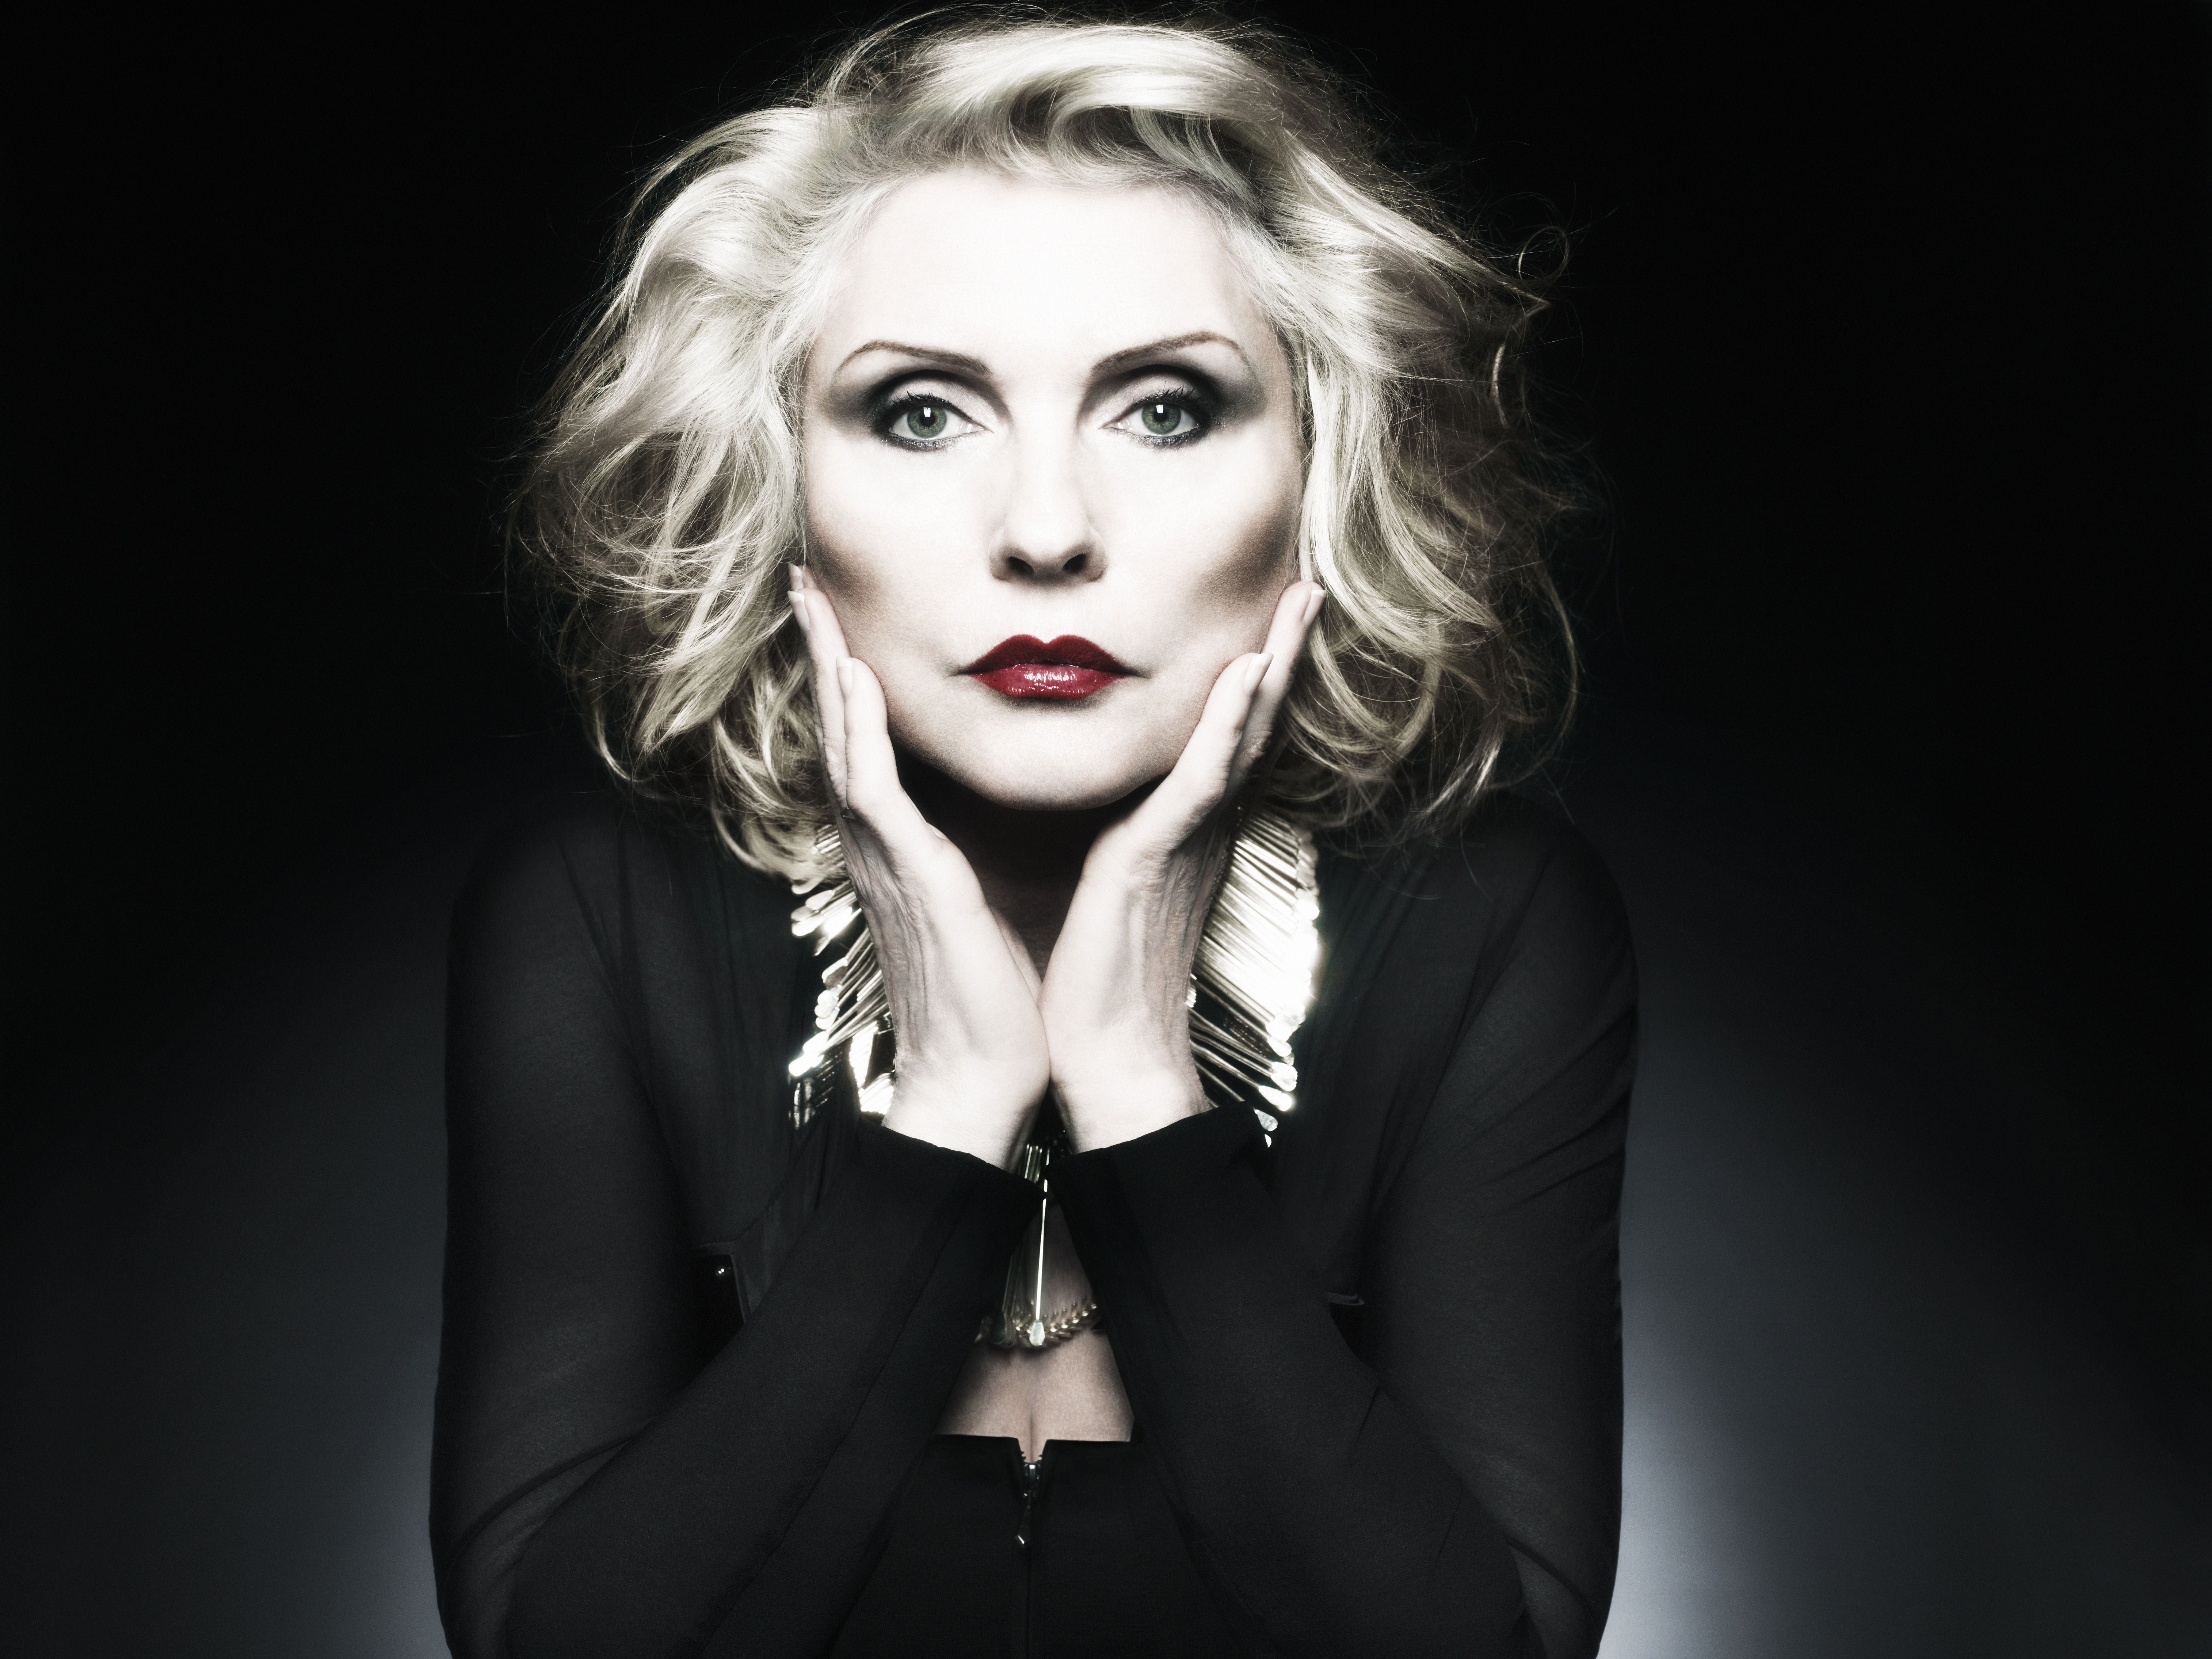 deborah harry andy warholdeborah harry young, deborah harry i want that man, deborah harry bright side, deborah harry 2013, deborah harry discography, deborah harry 2014, deborah harry in love with love, deborah harry harley quinn, debbie harry pictures, deborah harry maria youtube, deborah harry sweet and low, deborah harry quotes, deborah harry hairstyles, deborah harry iggy pop, deborah harry - rush rush, deborah harry discogs, deborah harry andy warhol, deborah harry height, deborah harry style, deborah harry 2016